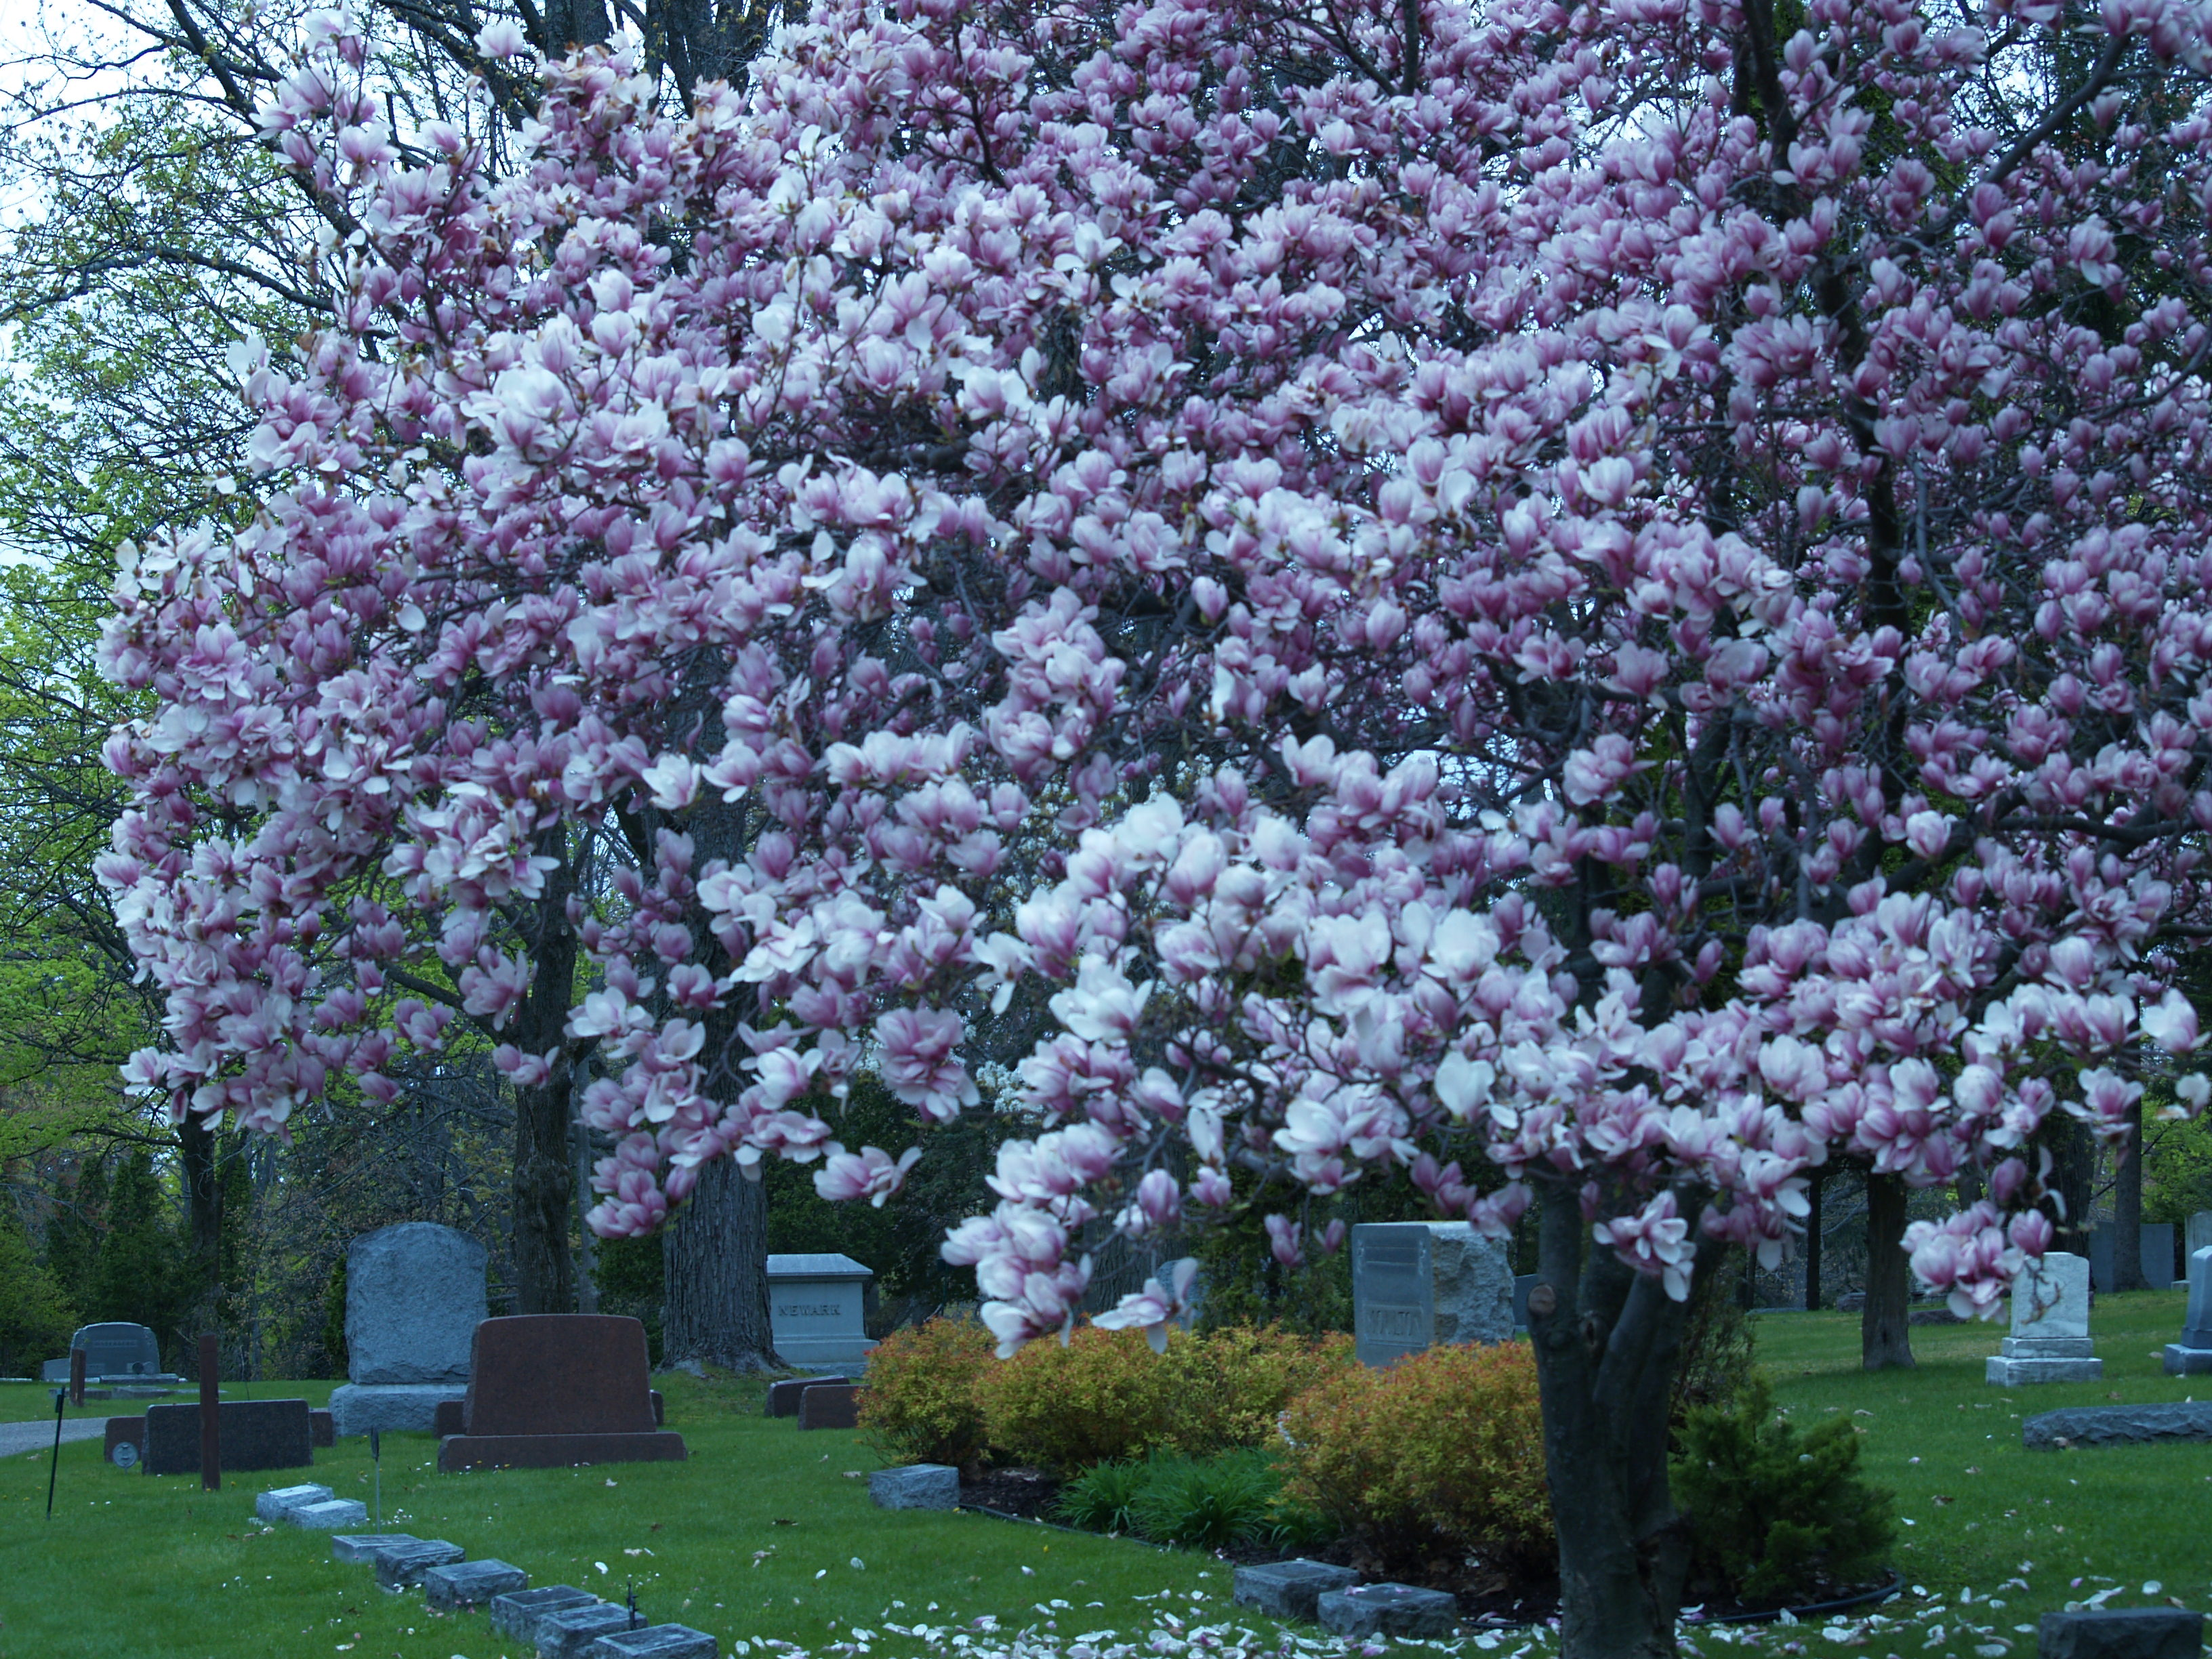 Flowers Blooming in the Cemetery